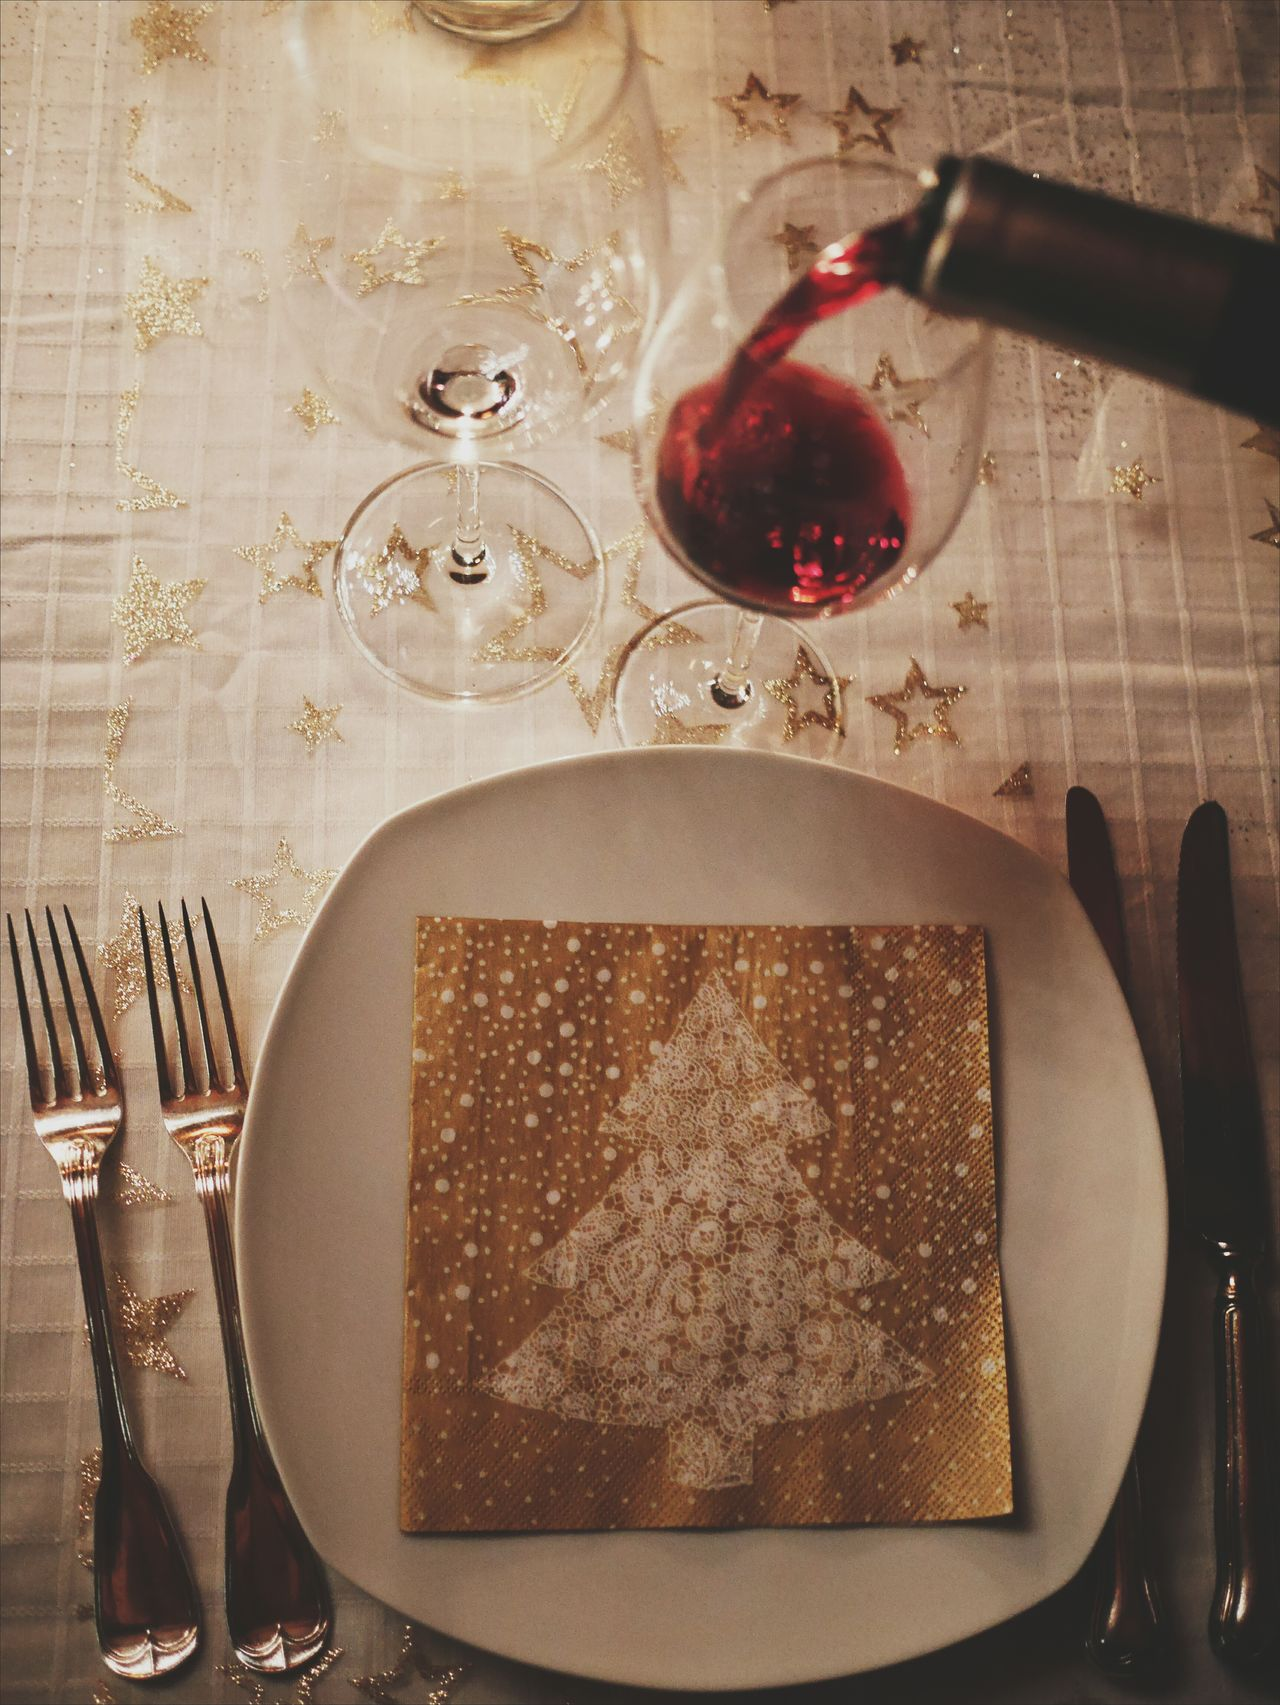 Food Plate Fork Food And Drink Table Indoors  Place Setting Meal Freshness Healthy Eating Ready-to-eat Close-up No People Day Christmas Around The World Christmas Red Wine Wine Moments